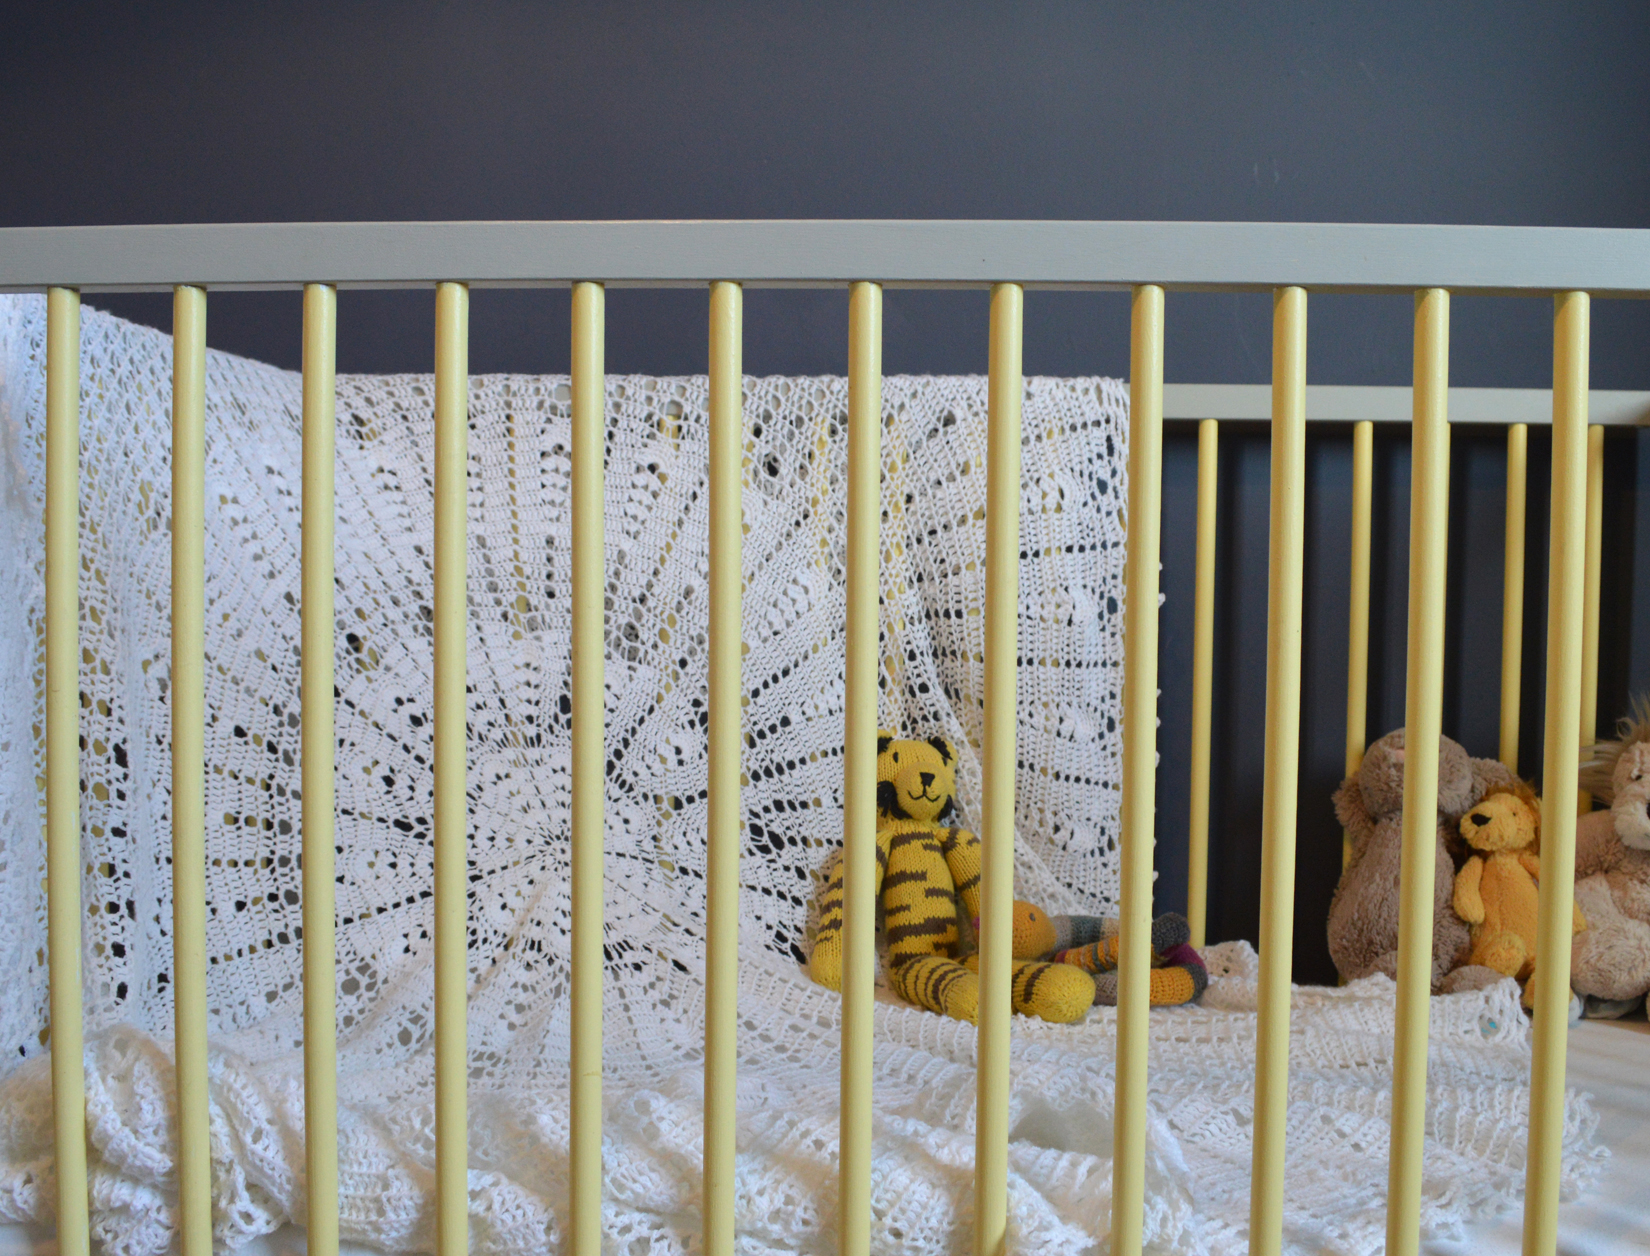 The Ikea cot is painted in Farrow & Ball's Day Room Yellow and Manor House Gray